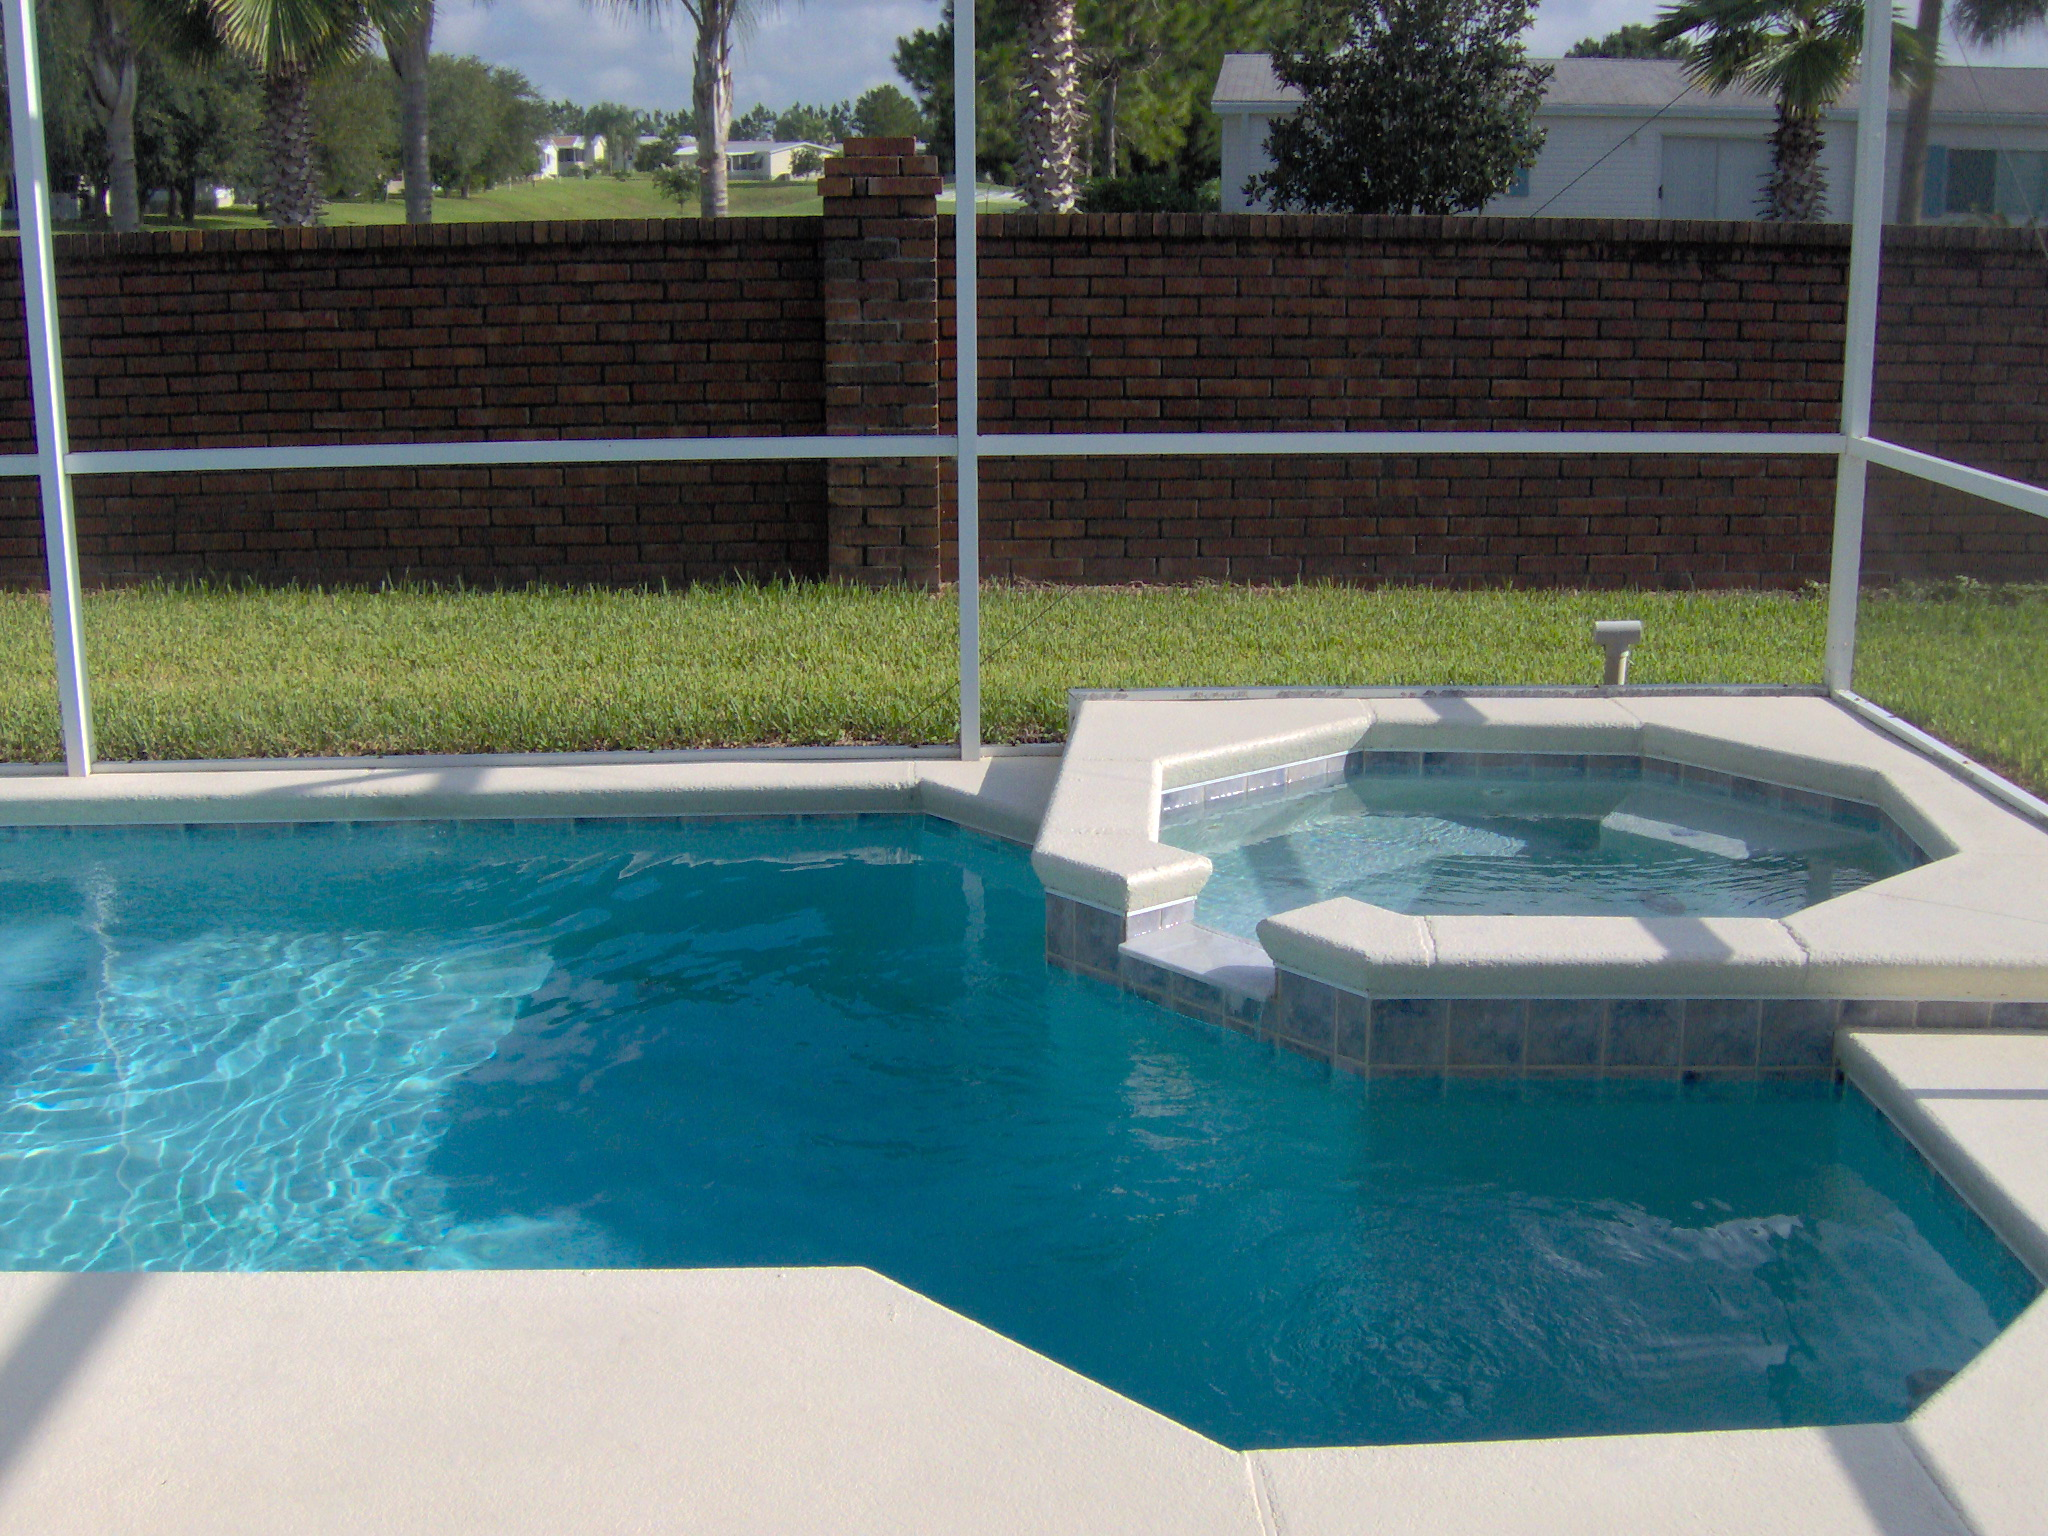 Archivo Small Pool With Small Jacuzzi Jpg Wikipedia La